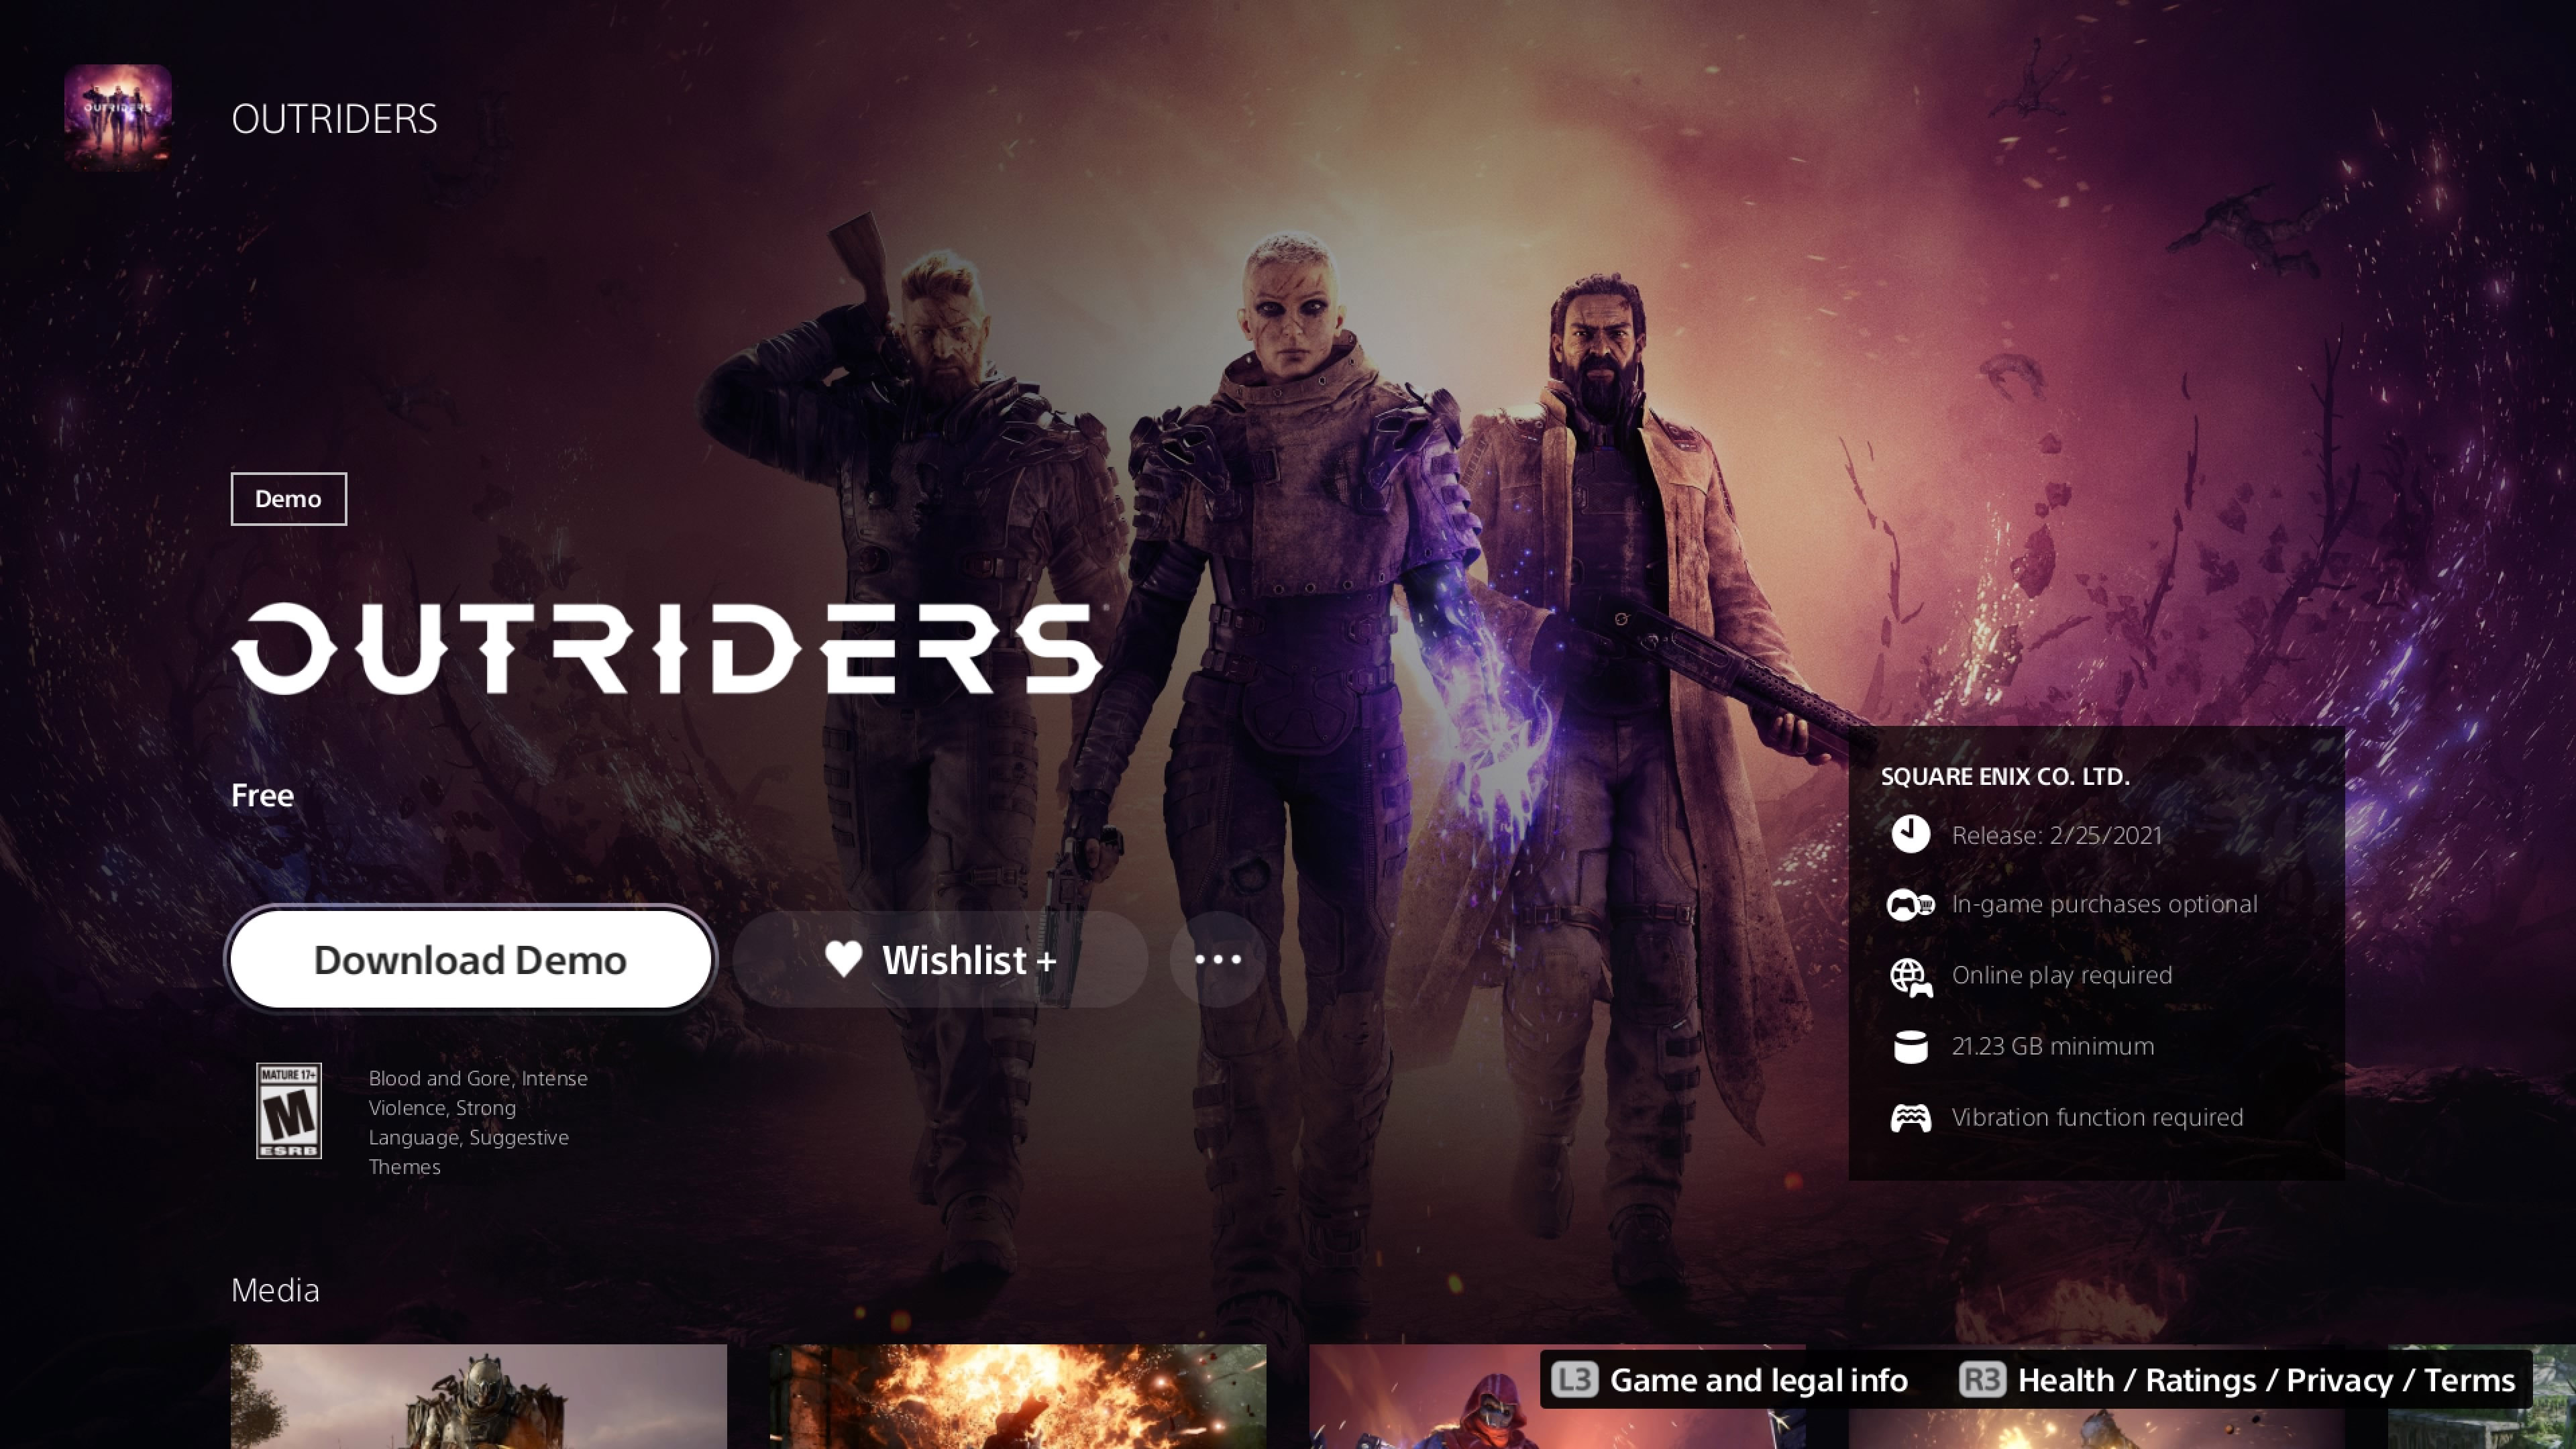 How to download the Outriders demo